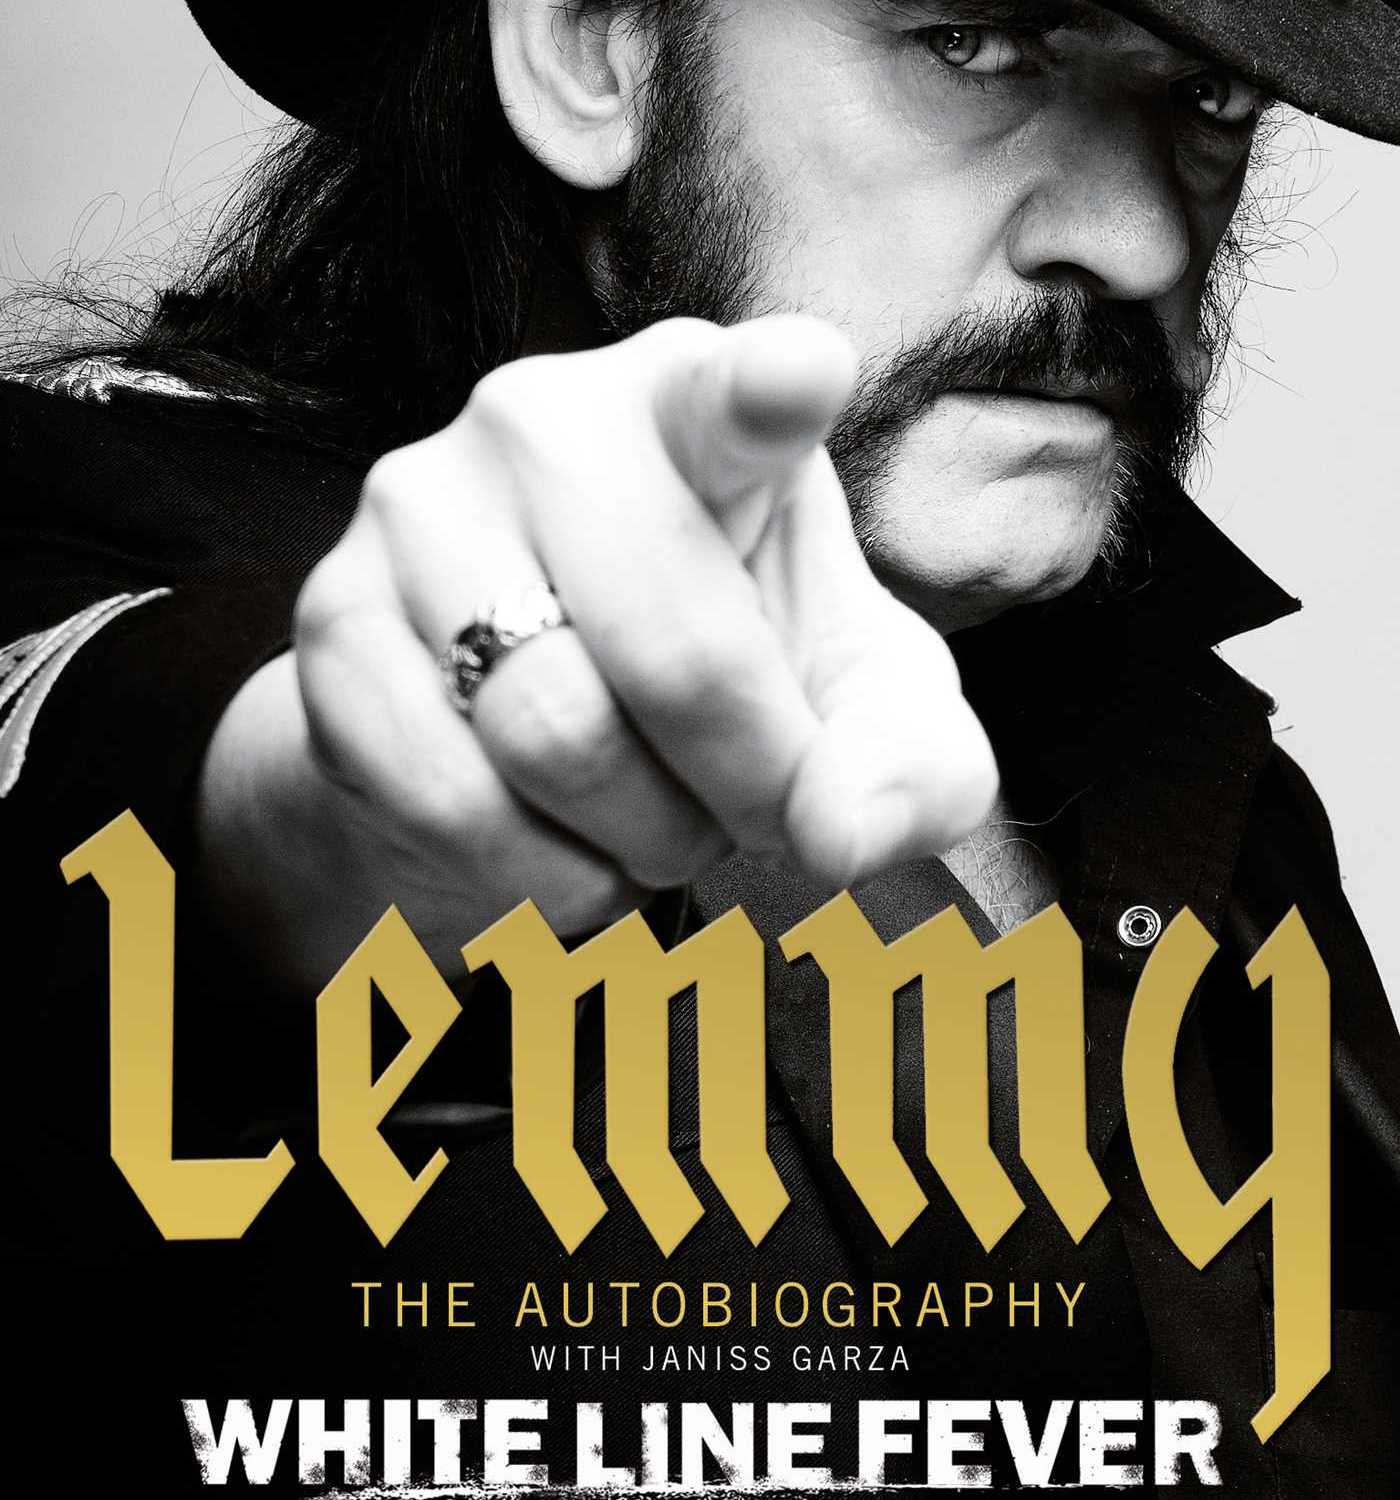 [Books] White Line Fever: The Autobiography by Lemmy Kilmister